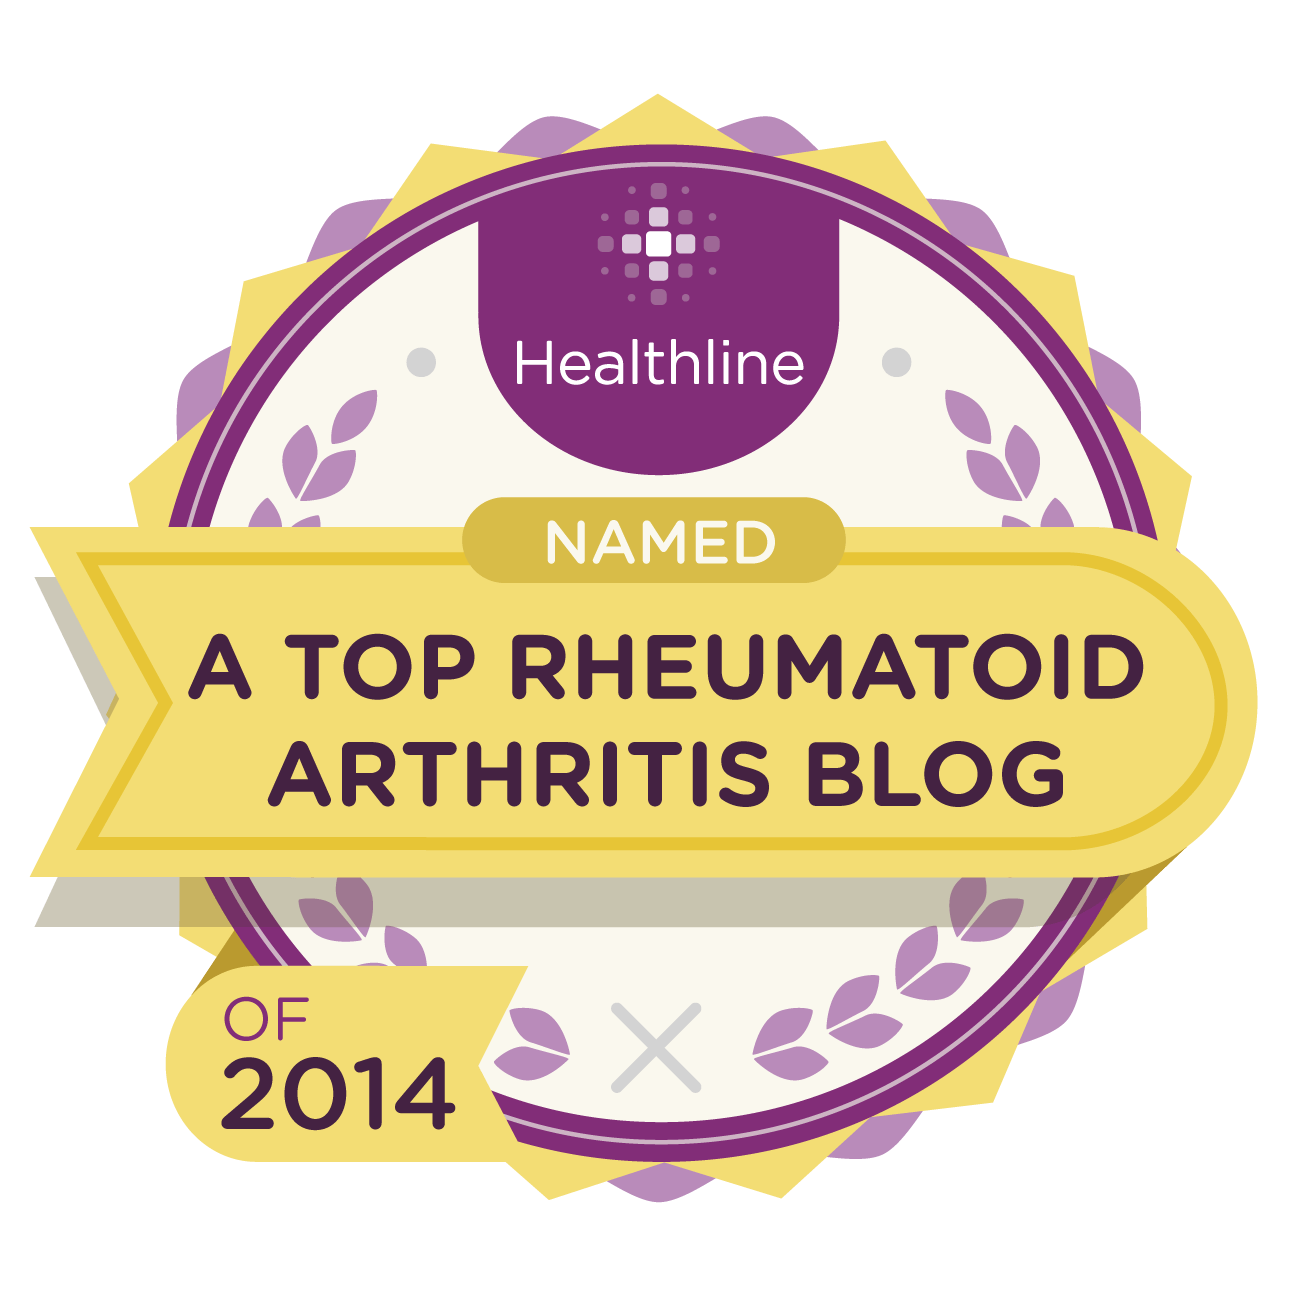 The 20 Best Rheumatoid Arthritis Health Blogs of 2014